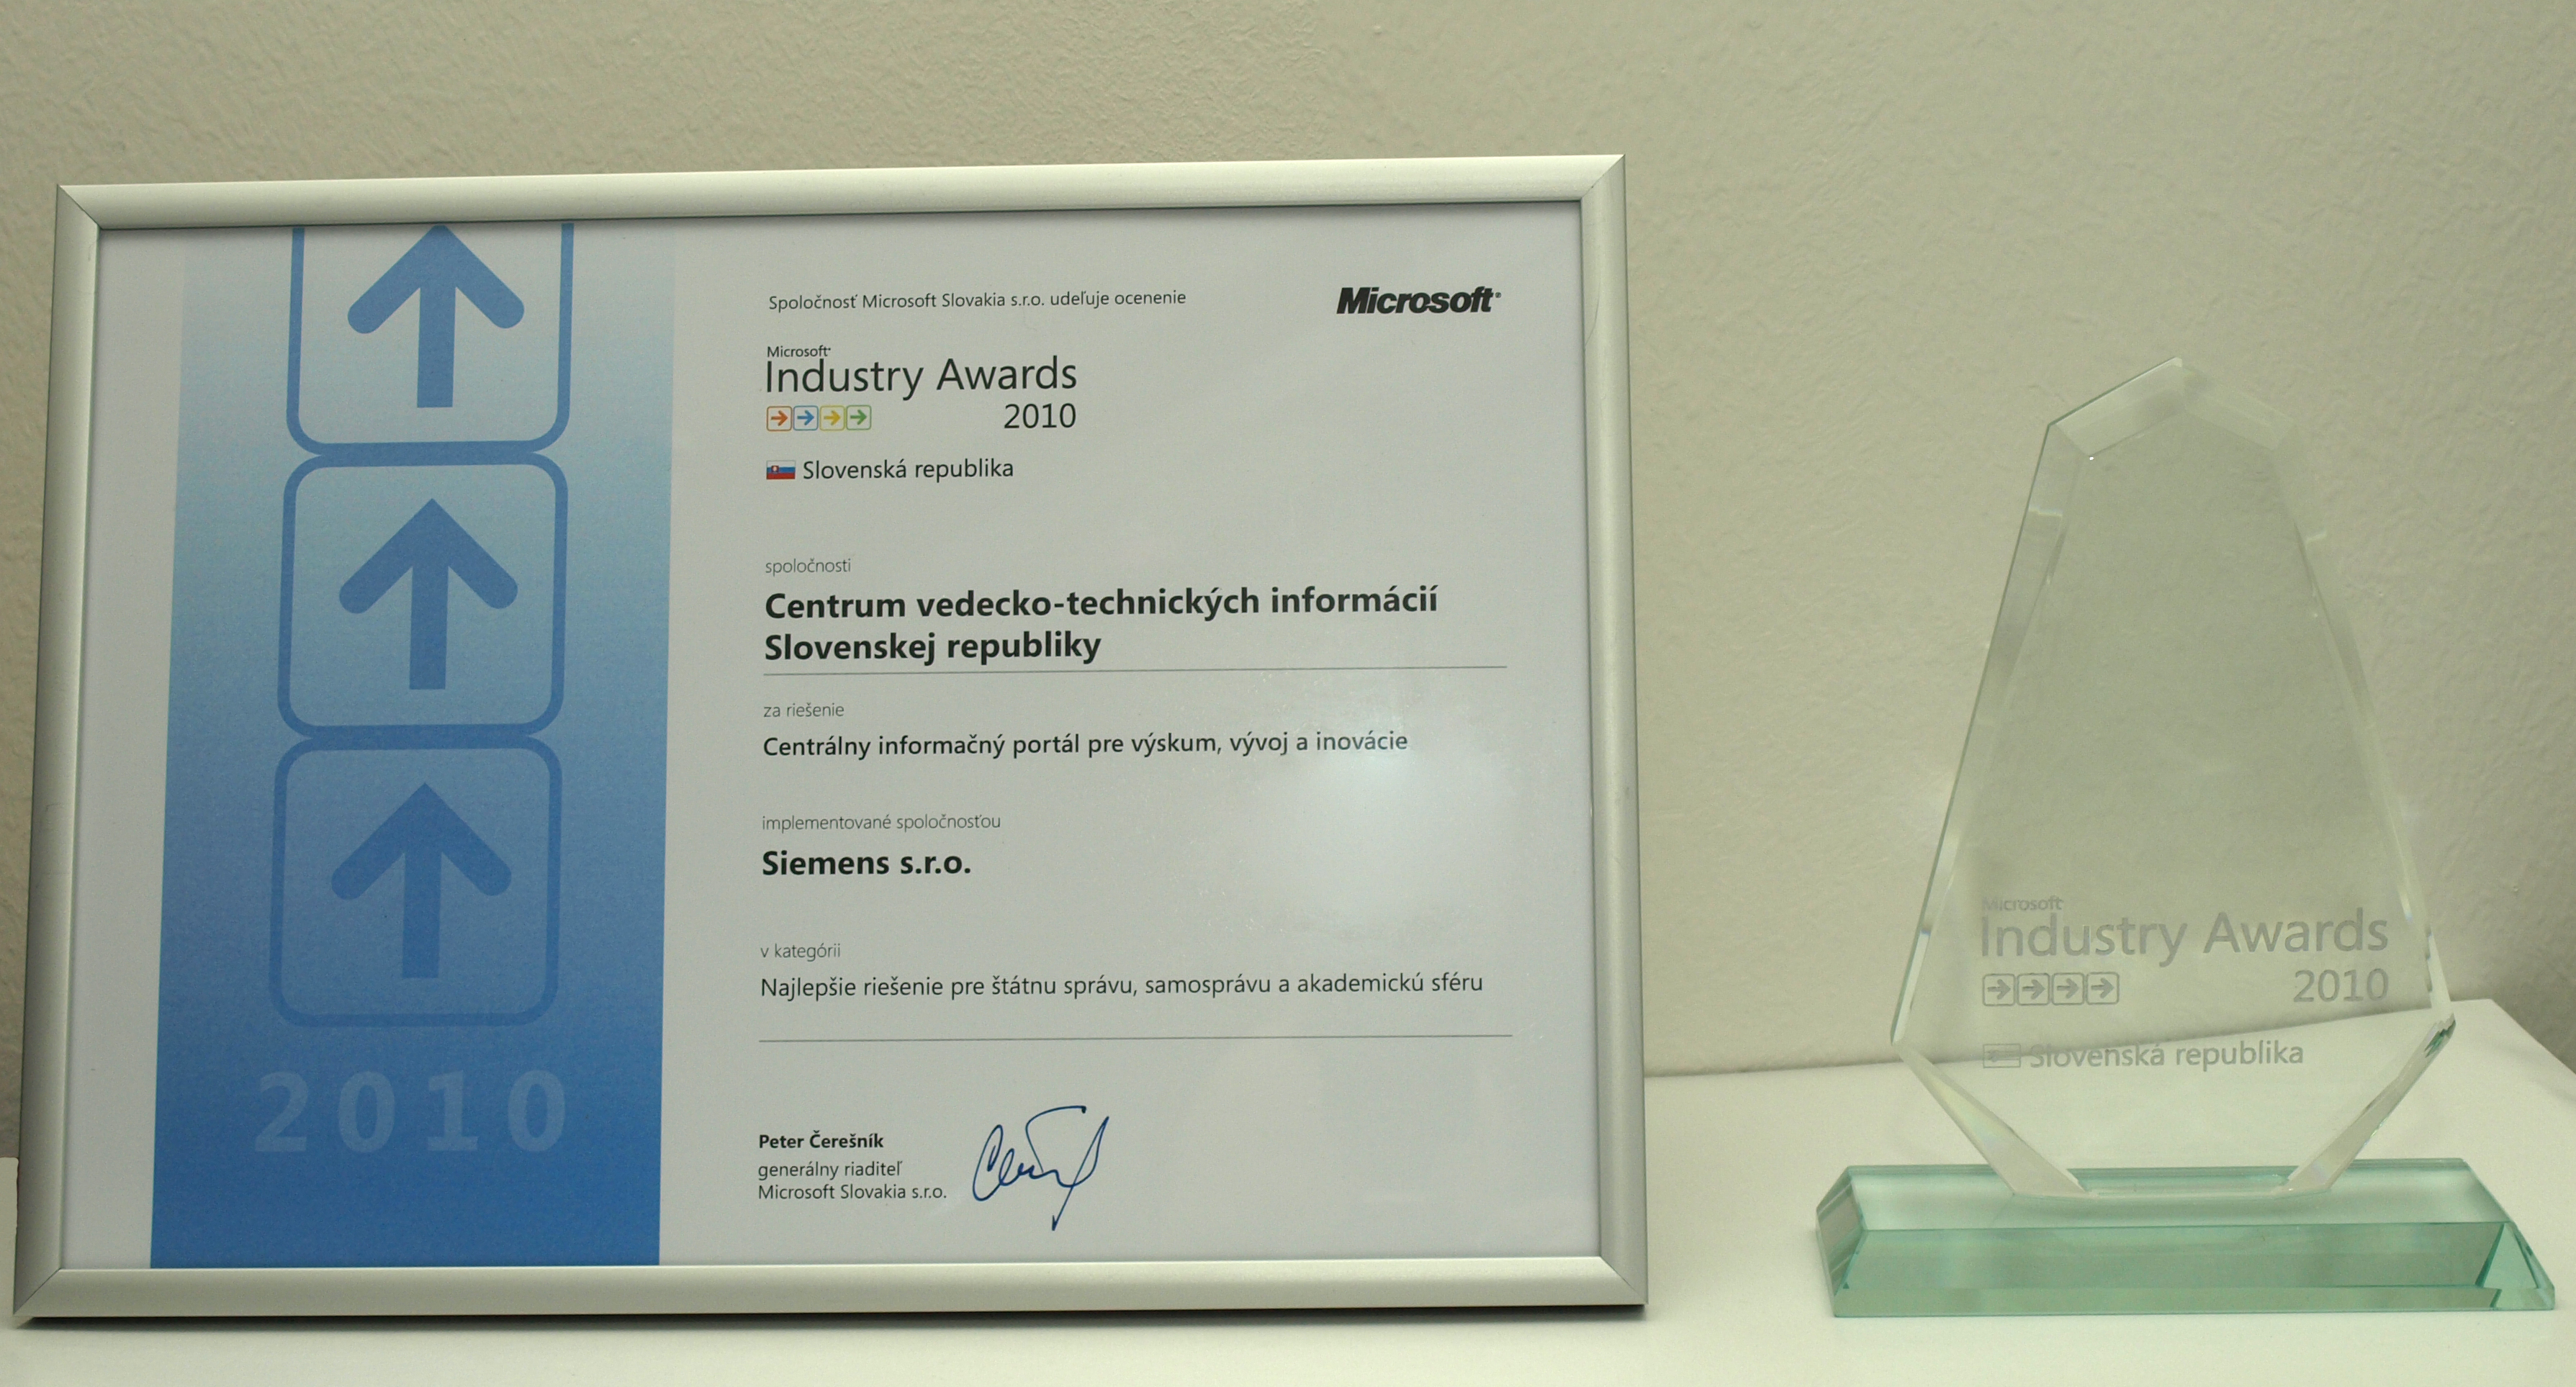 Microsoft Industry Awards